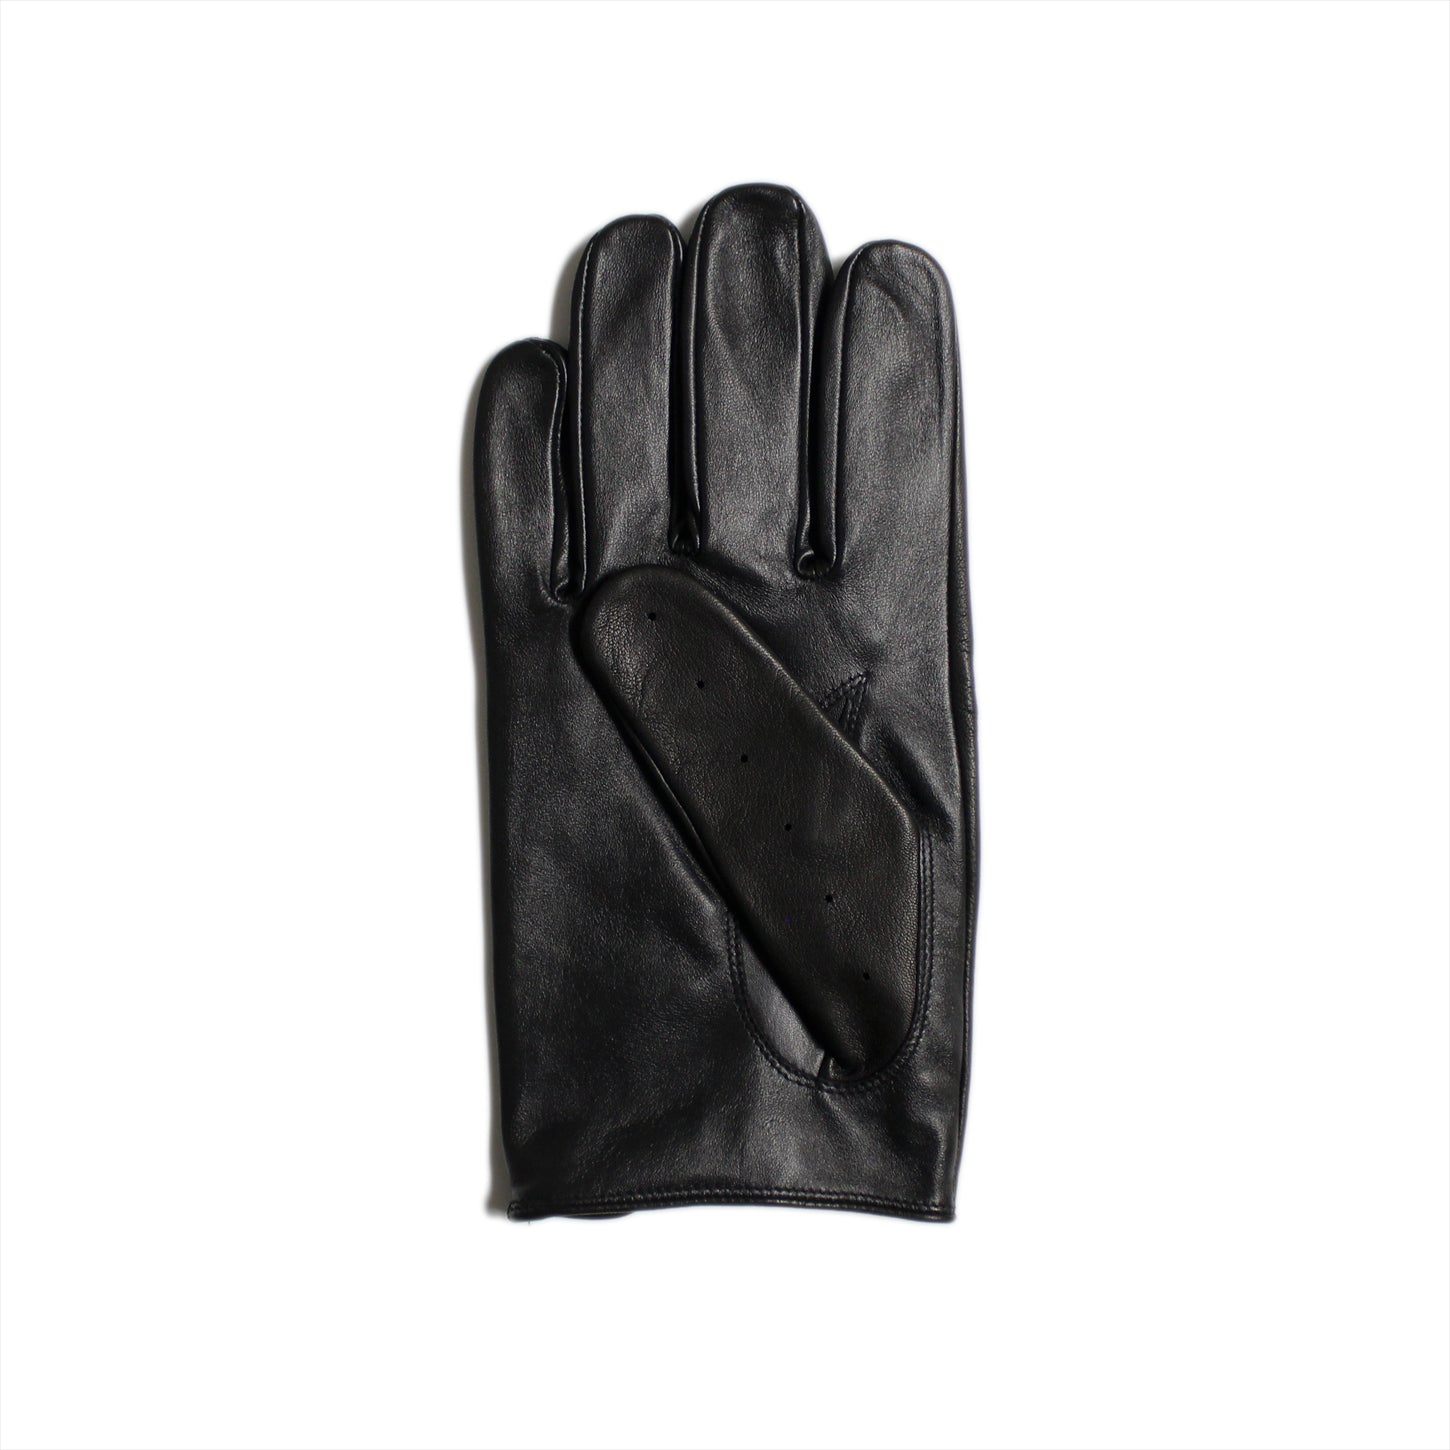 The Wayson Touchscreen Glove for Him